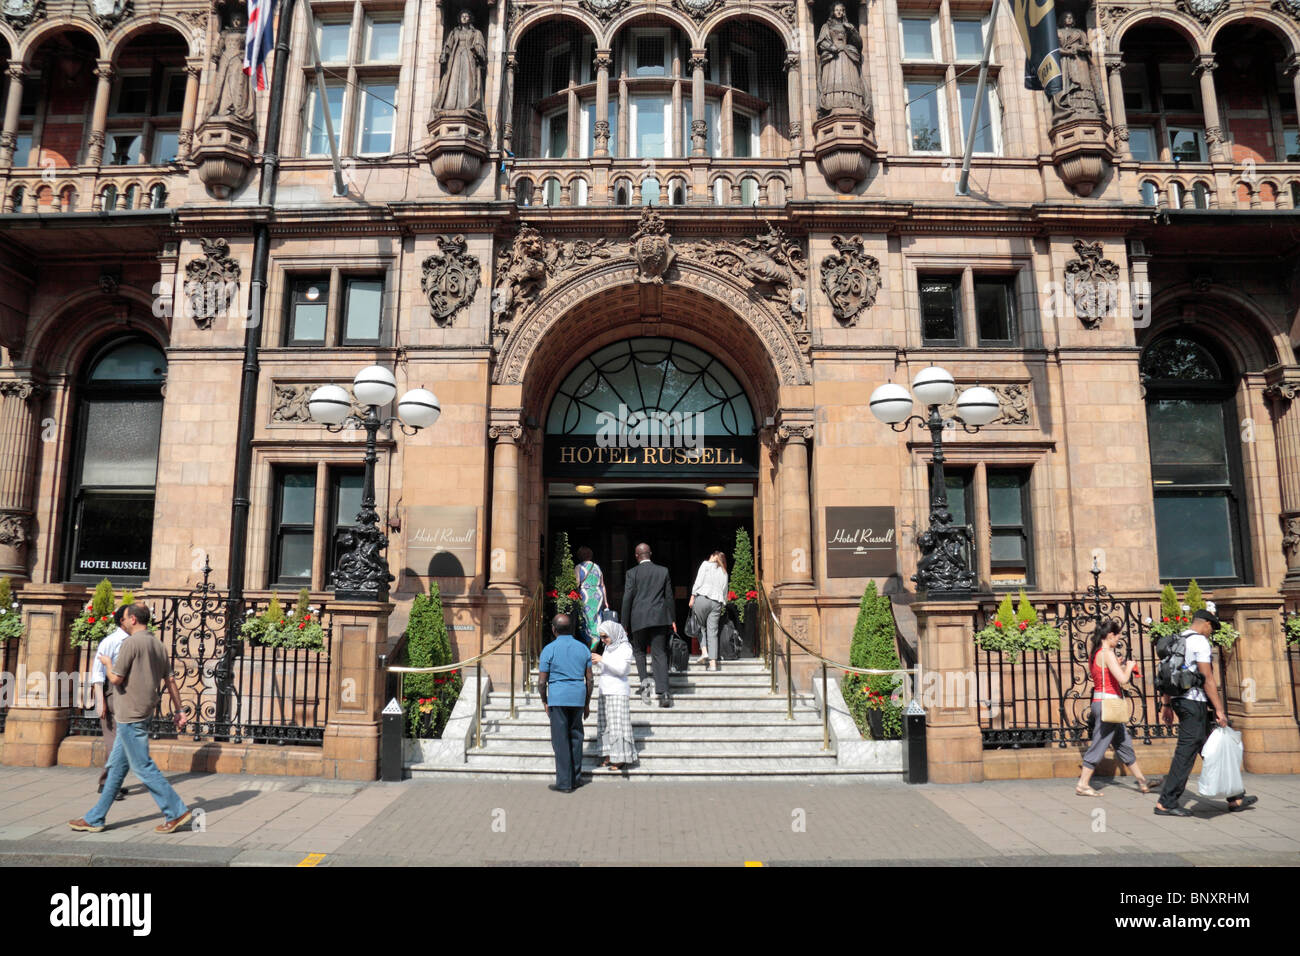 Bloomsbury Hotel London Russell Square